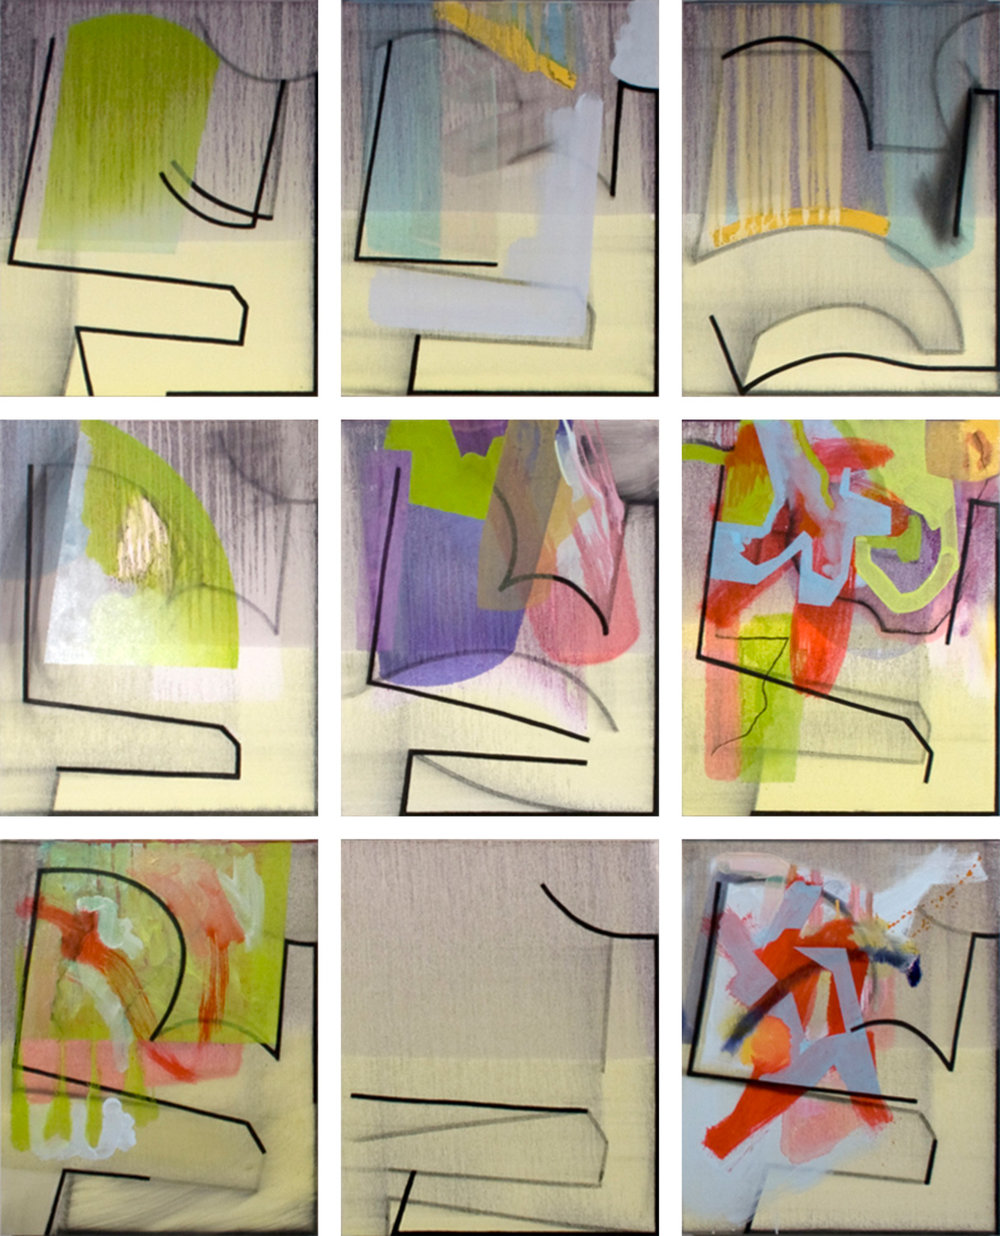 Late January, 9 panels, 2013